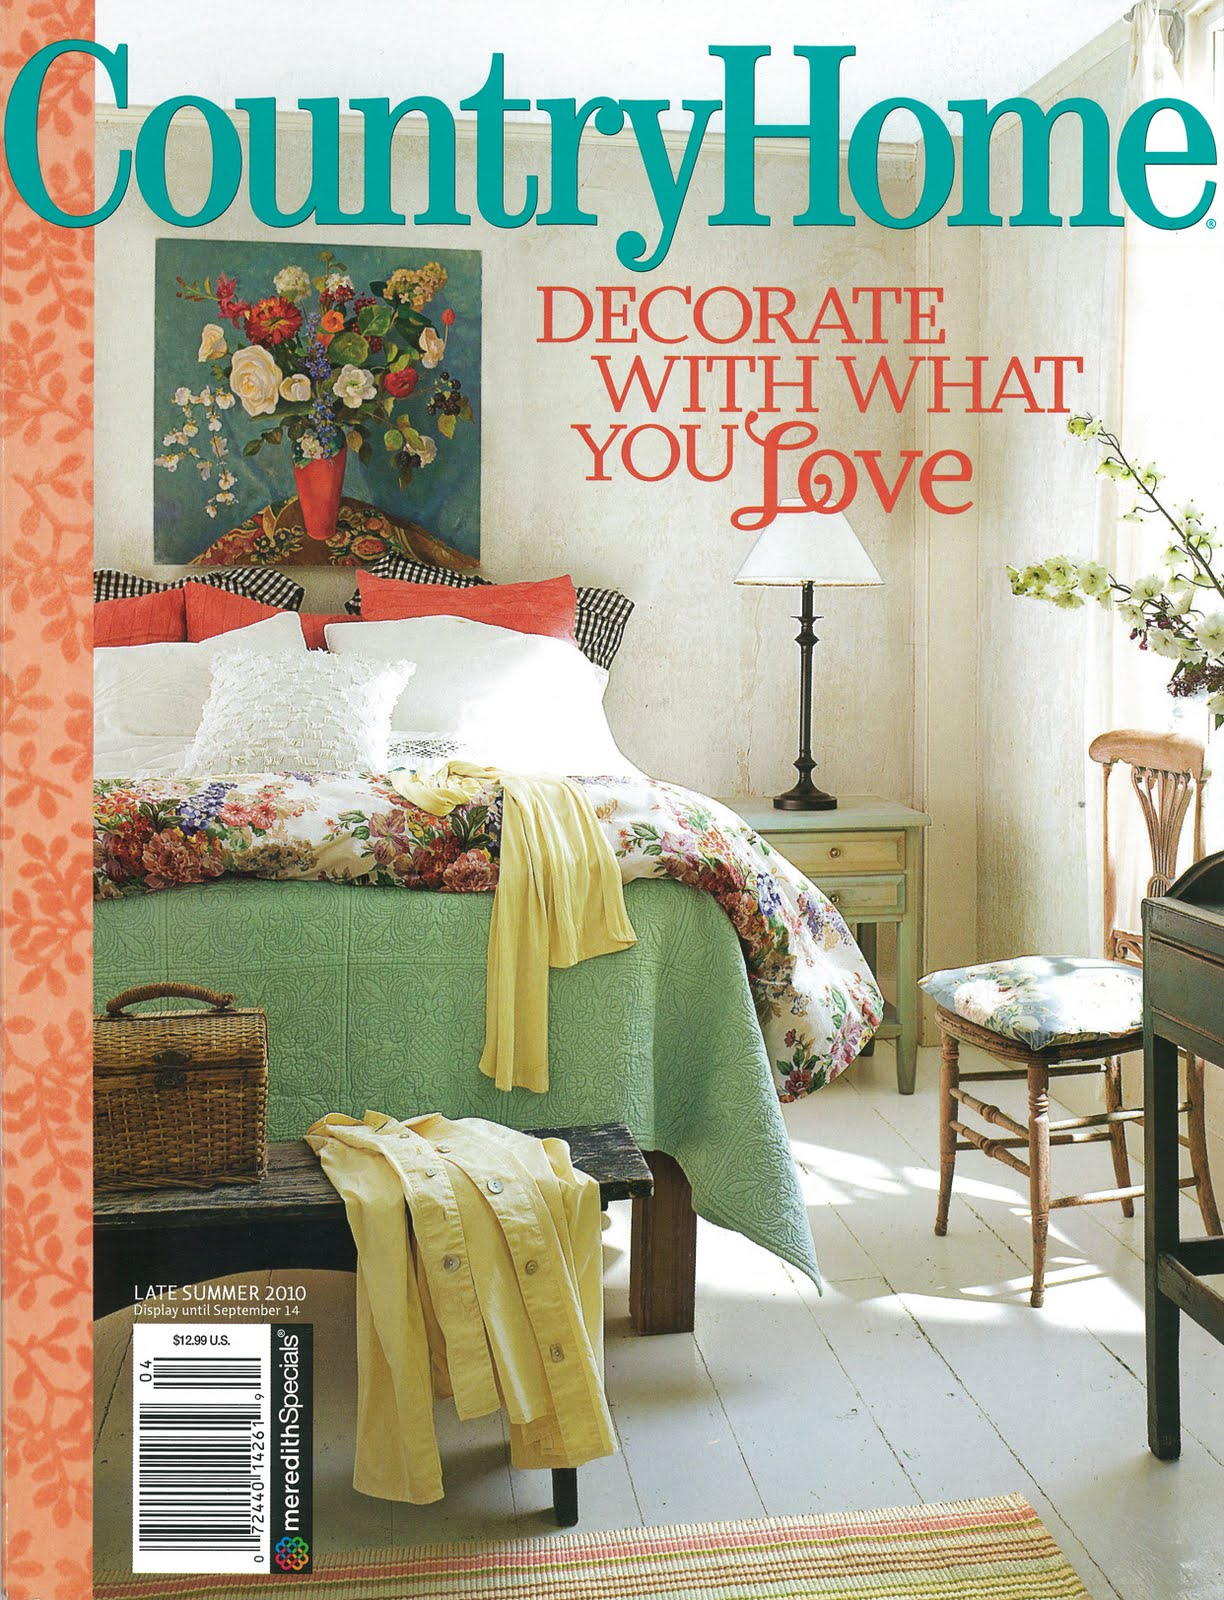 Bricolage new country home magazine and a plan b for Home magazines